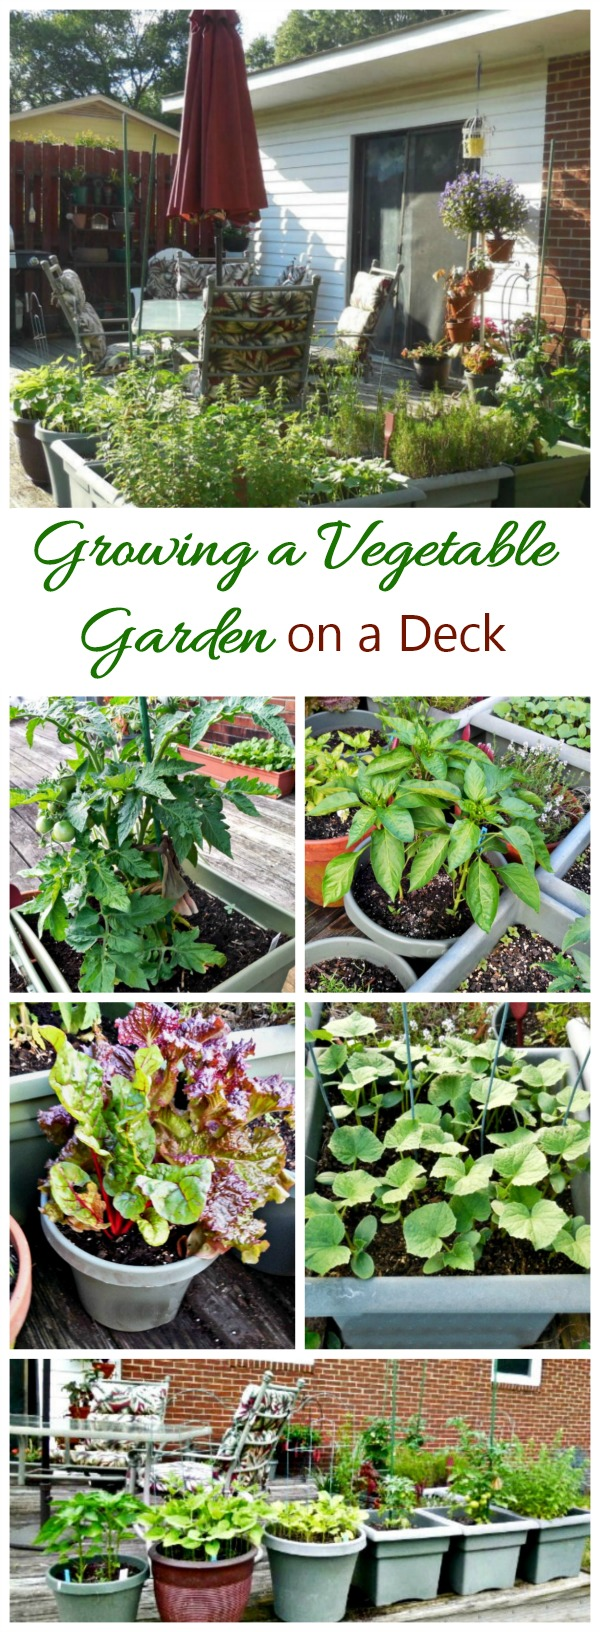 Growing A Vegetable Garden On A Deck Is A Great Way To Go If You Don